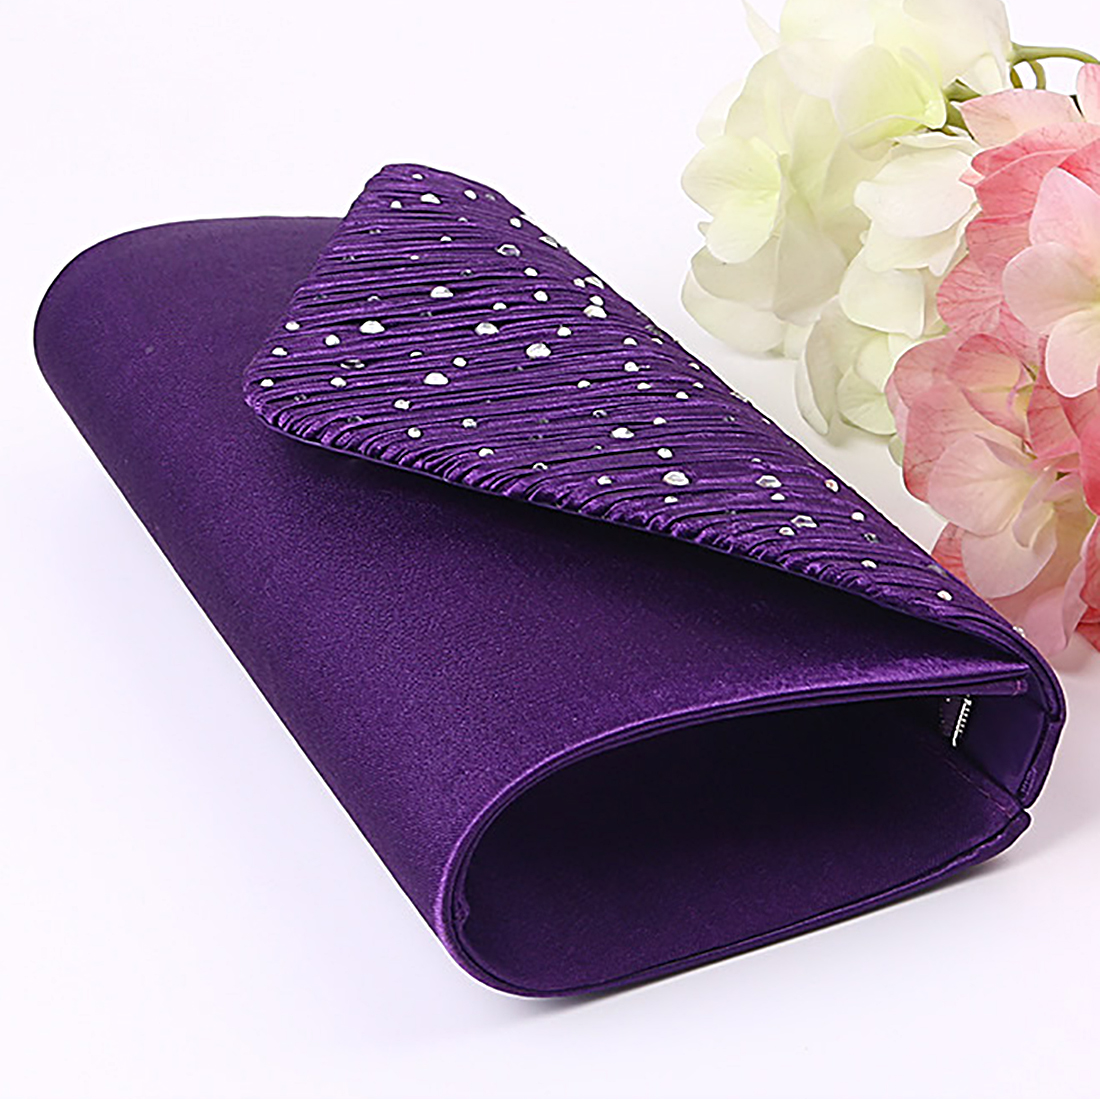 Tiny Glass Beads Clutches For Women Fashion Evening Bags Purple Chain Shoulder Bags Party Wedding Vintage Pearl Pochette Femme in Clutches from Luggage Bags